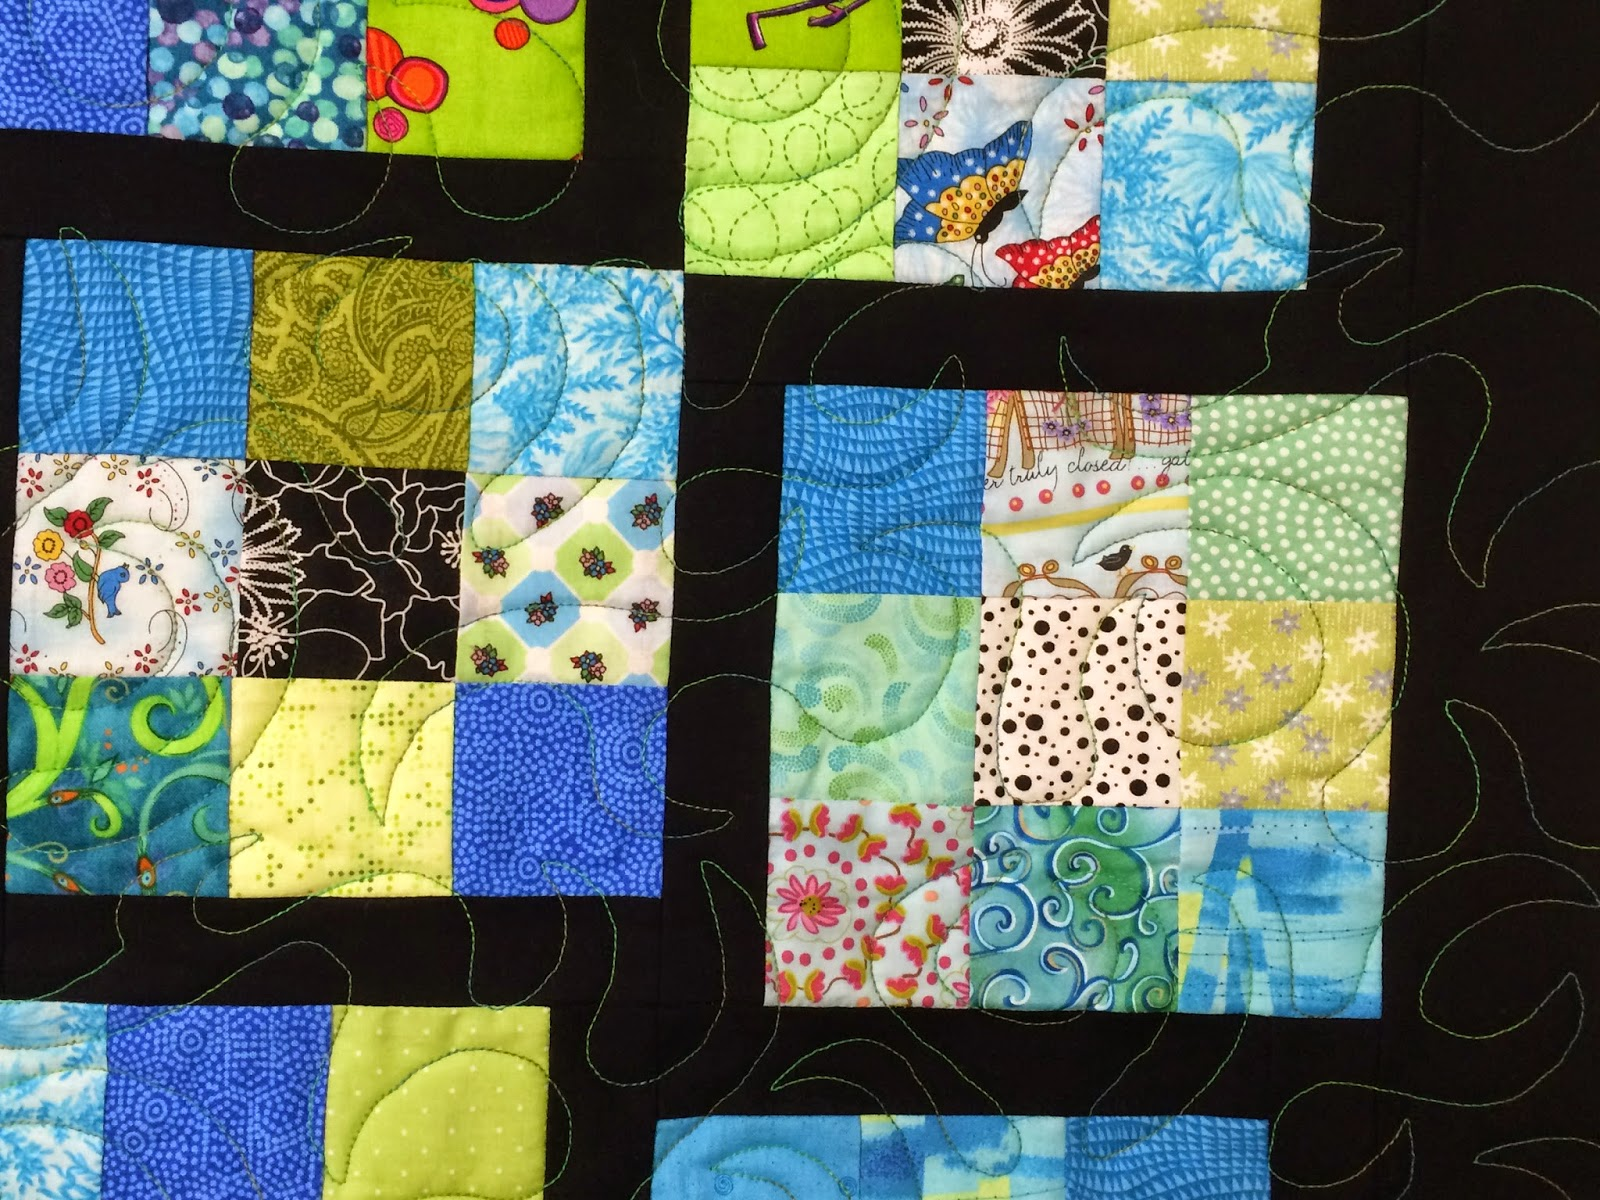 Elizabeth Magee's 9 Patch offset Scrappy Quilt